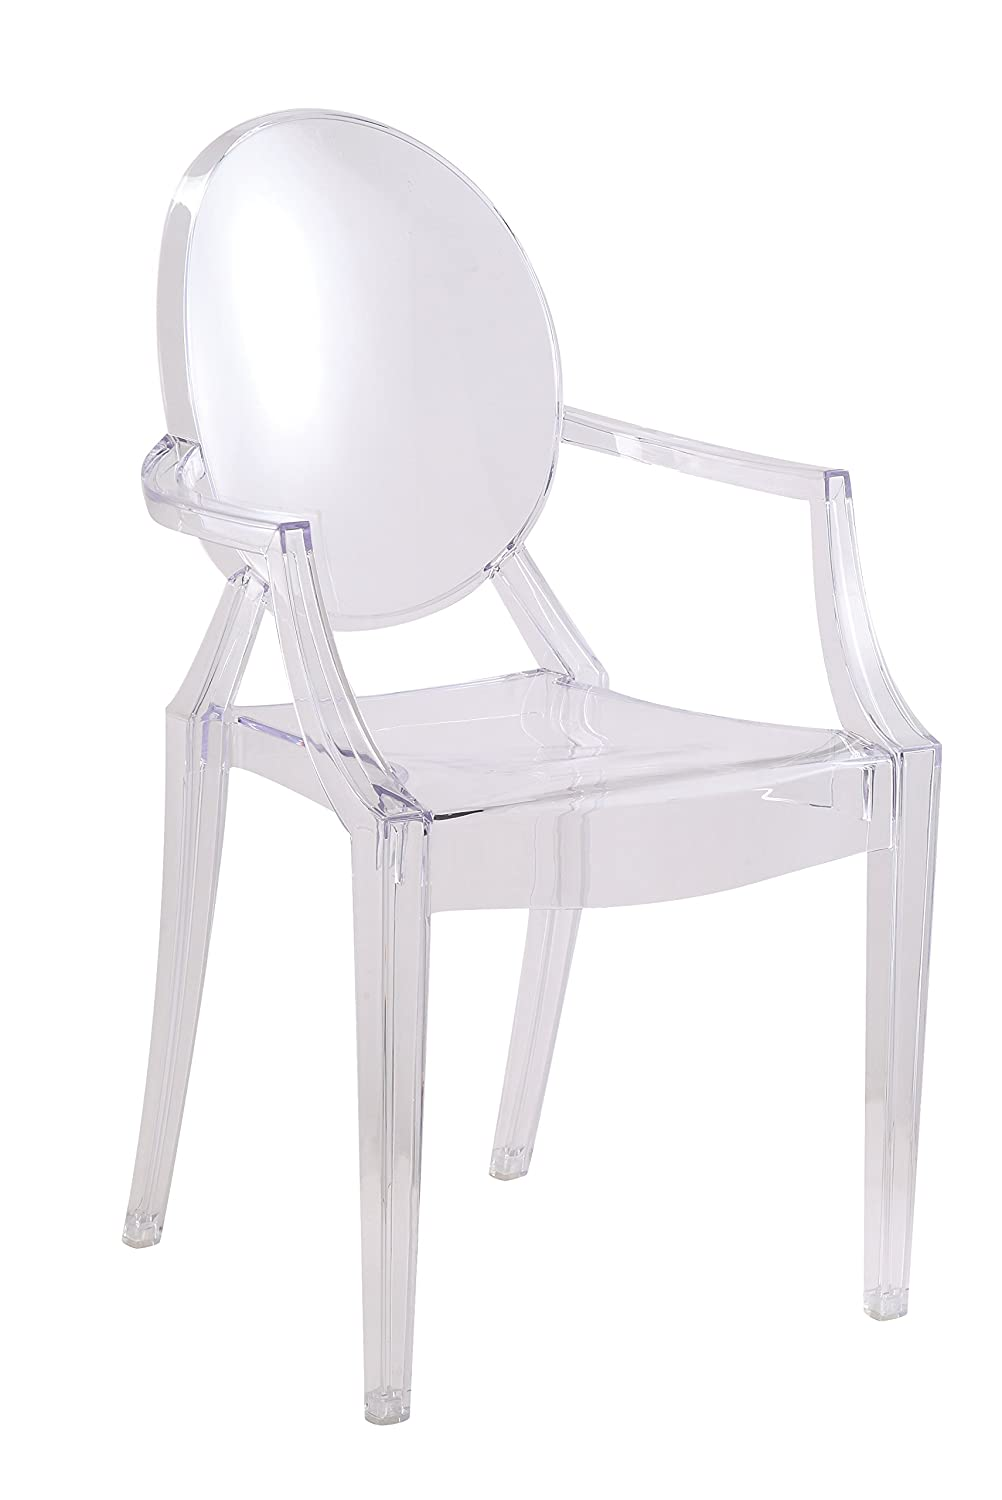 Amazoncom Designer Modern Clear Arm Chair Set of 2 Chairs